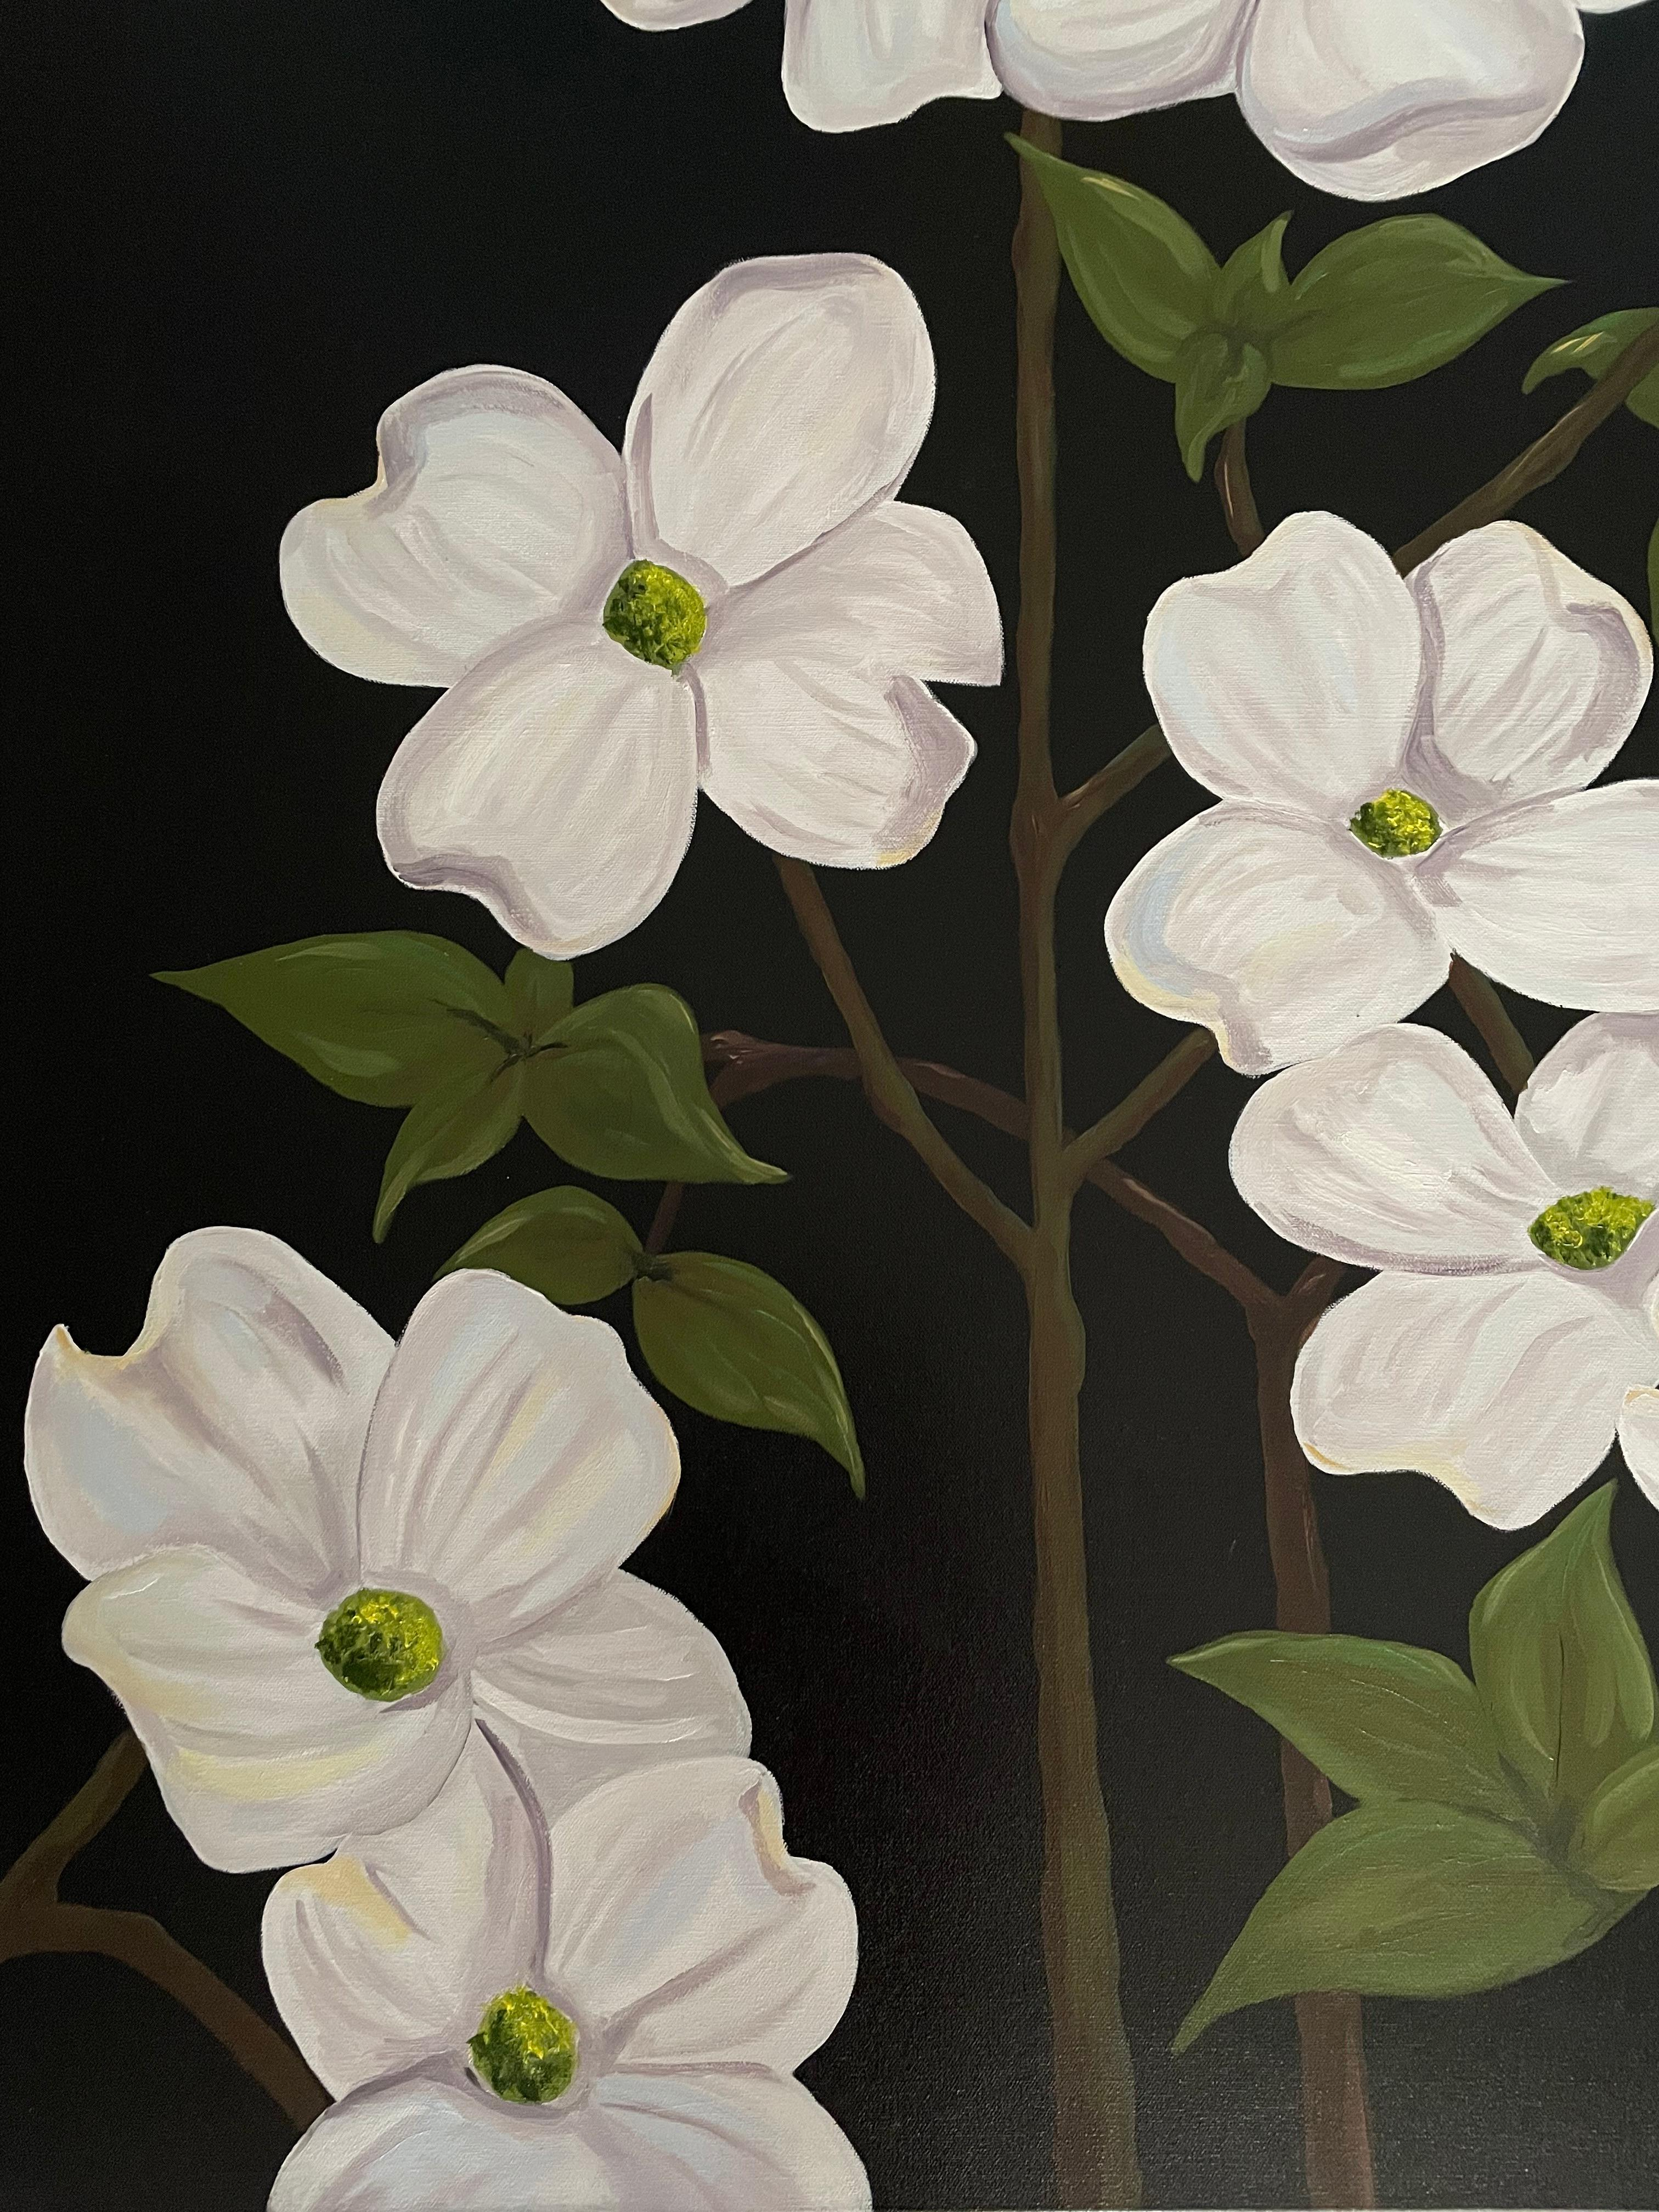 Jubilant White Flowers with Verdant Leaves on Branches. Title - Wild Dogwood